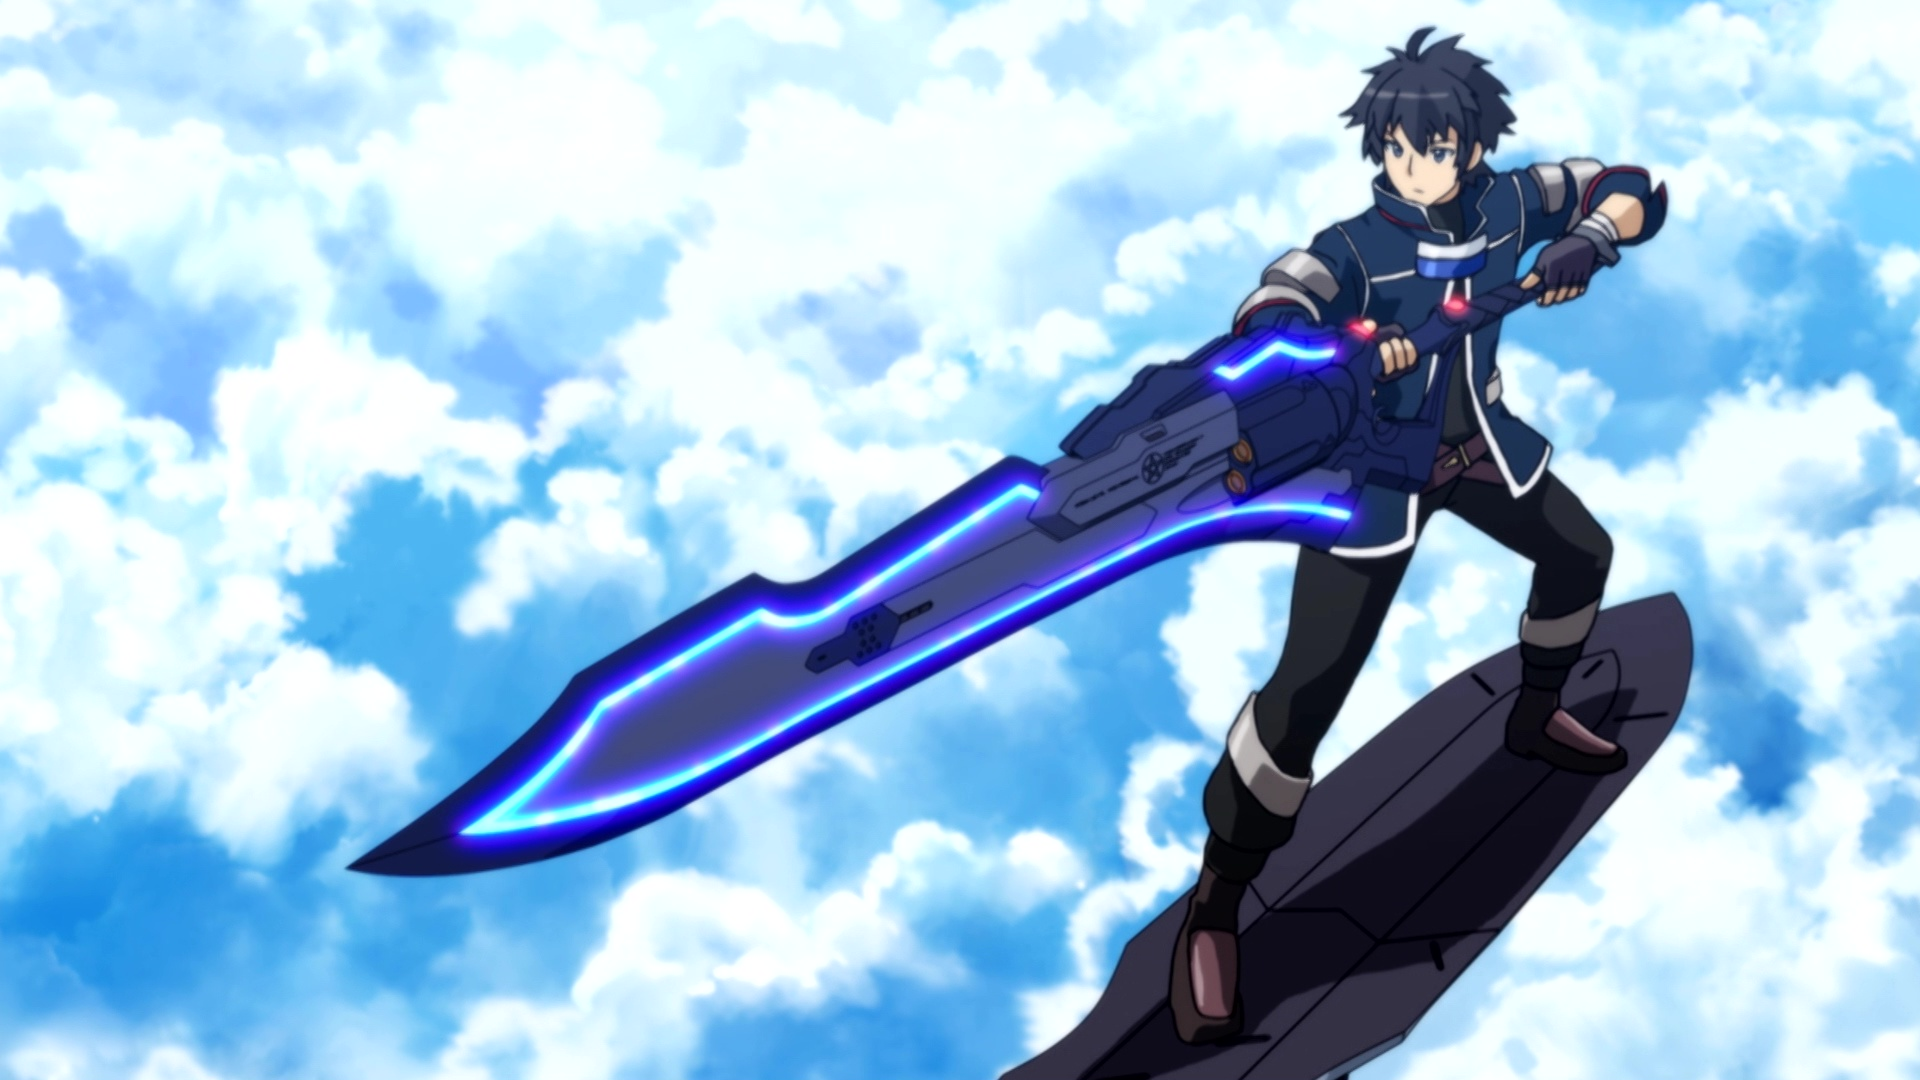 watch sky wizards academy season 1 episode 5 anime on funimation